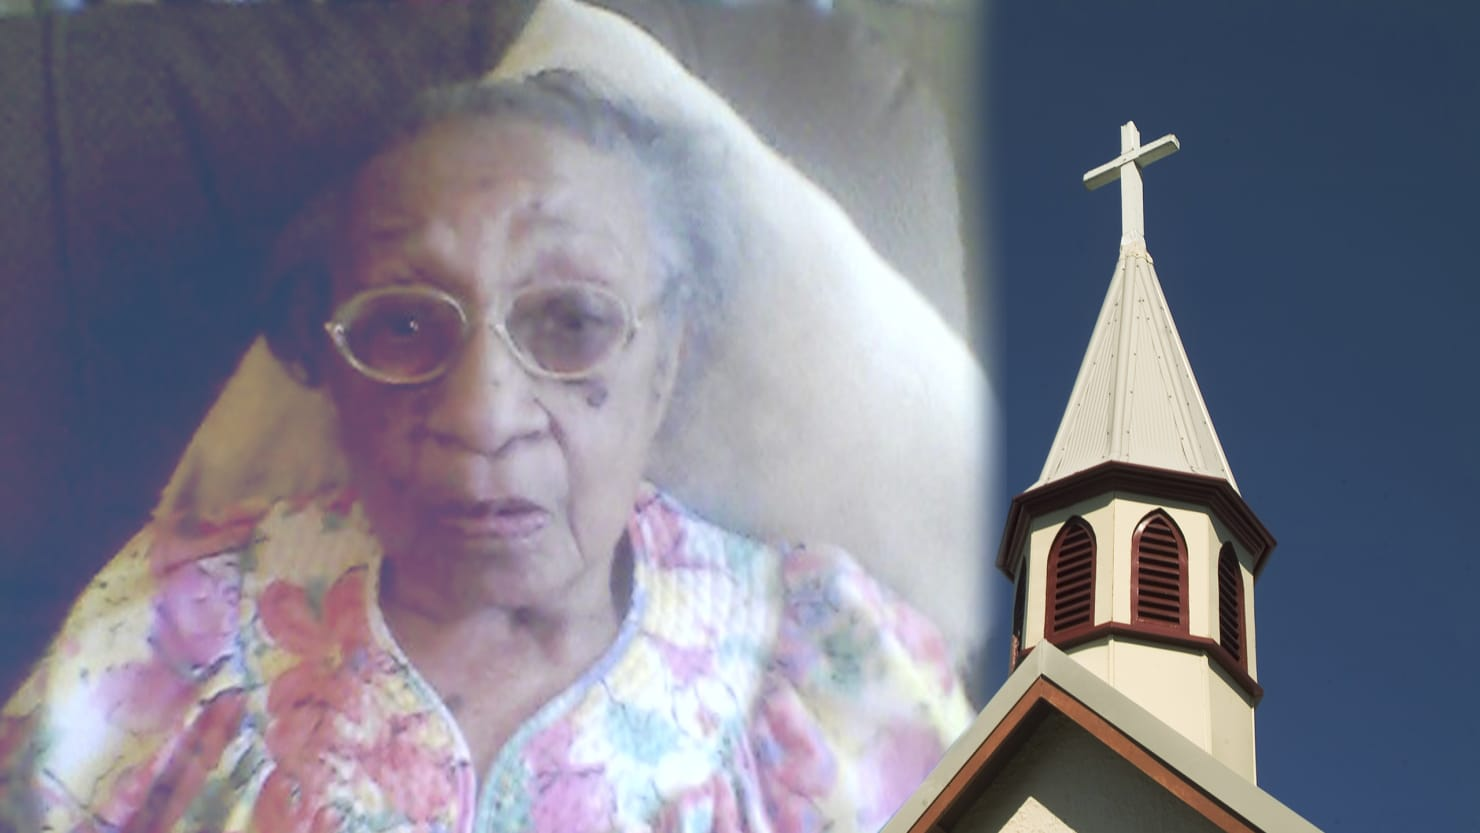 Church Blacklists 103-Year-Old Granny, Then Calls the Cops on Her